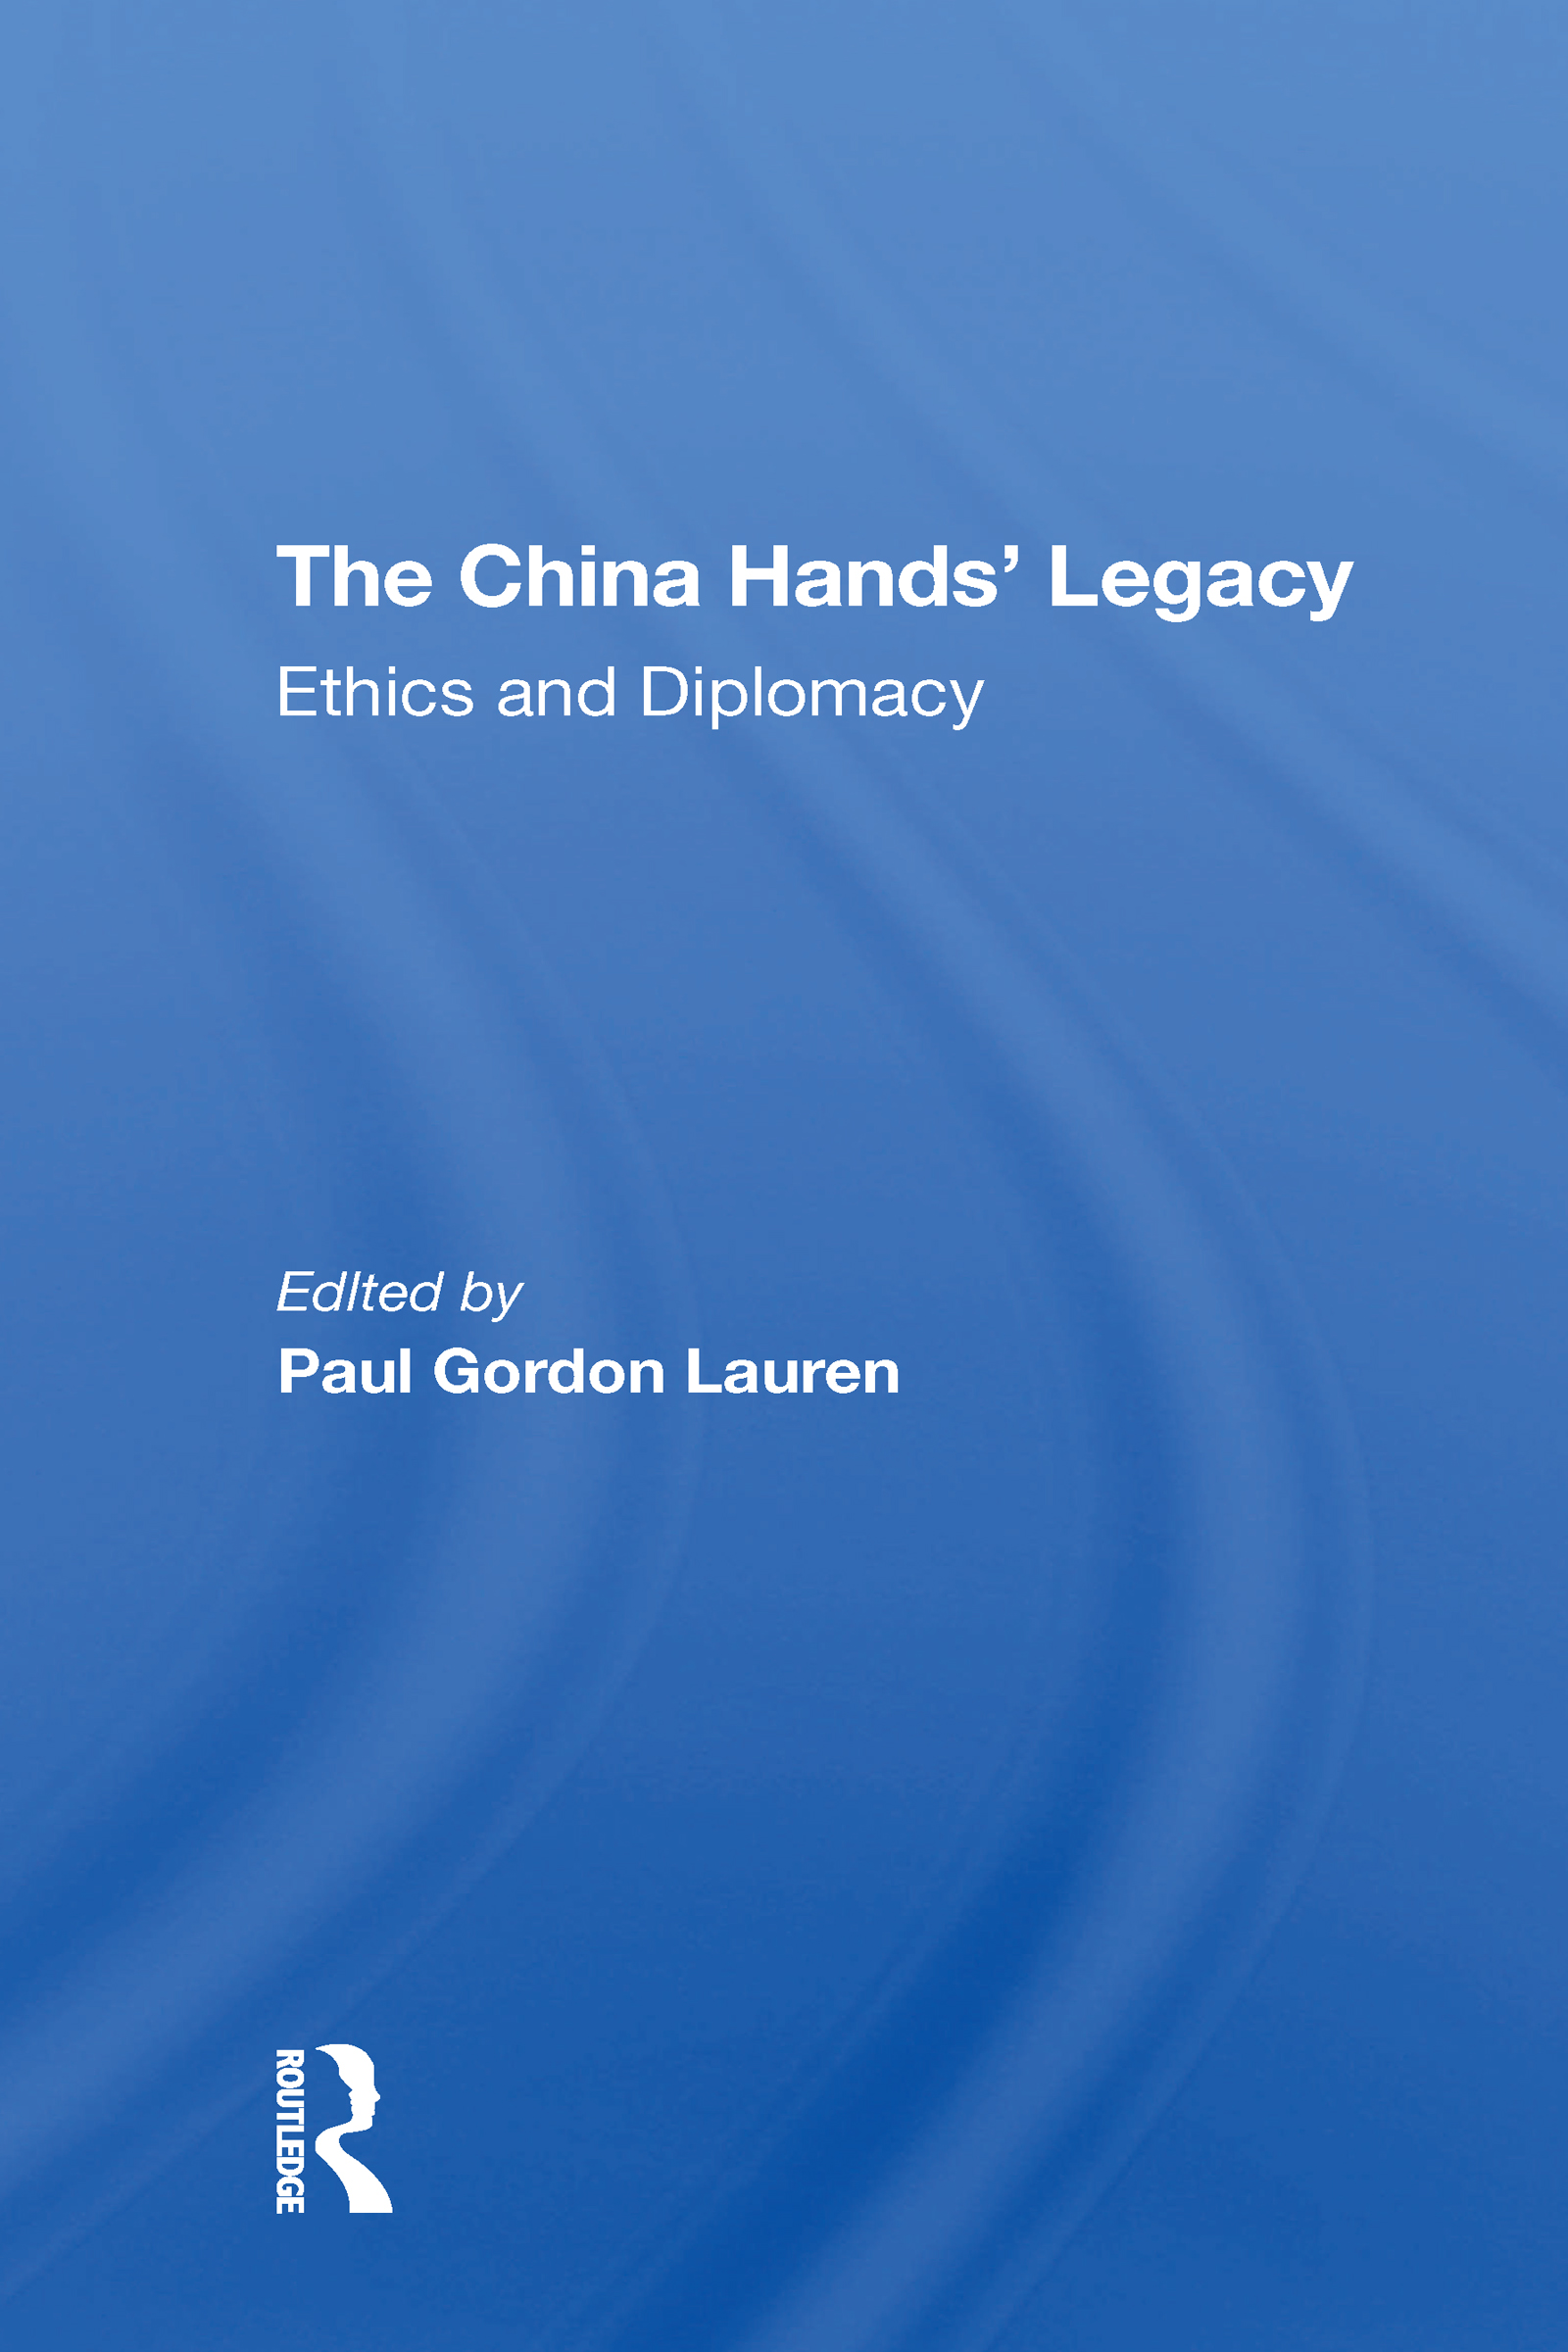 The China Hands' Legacy